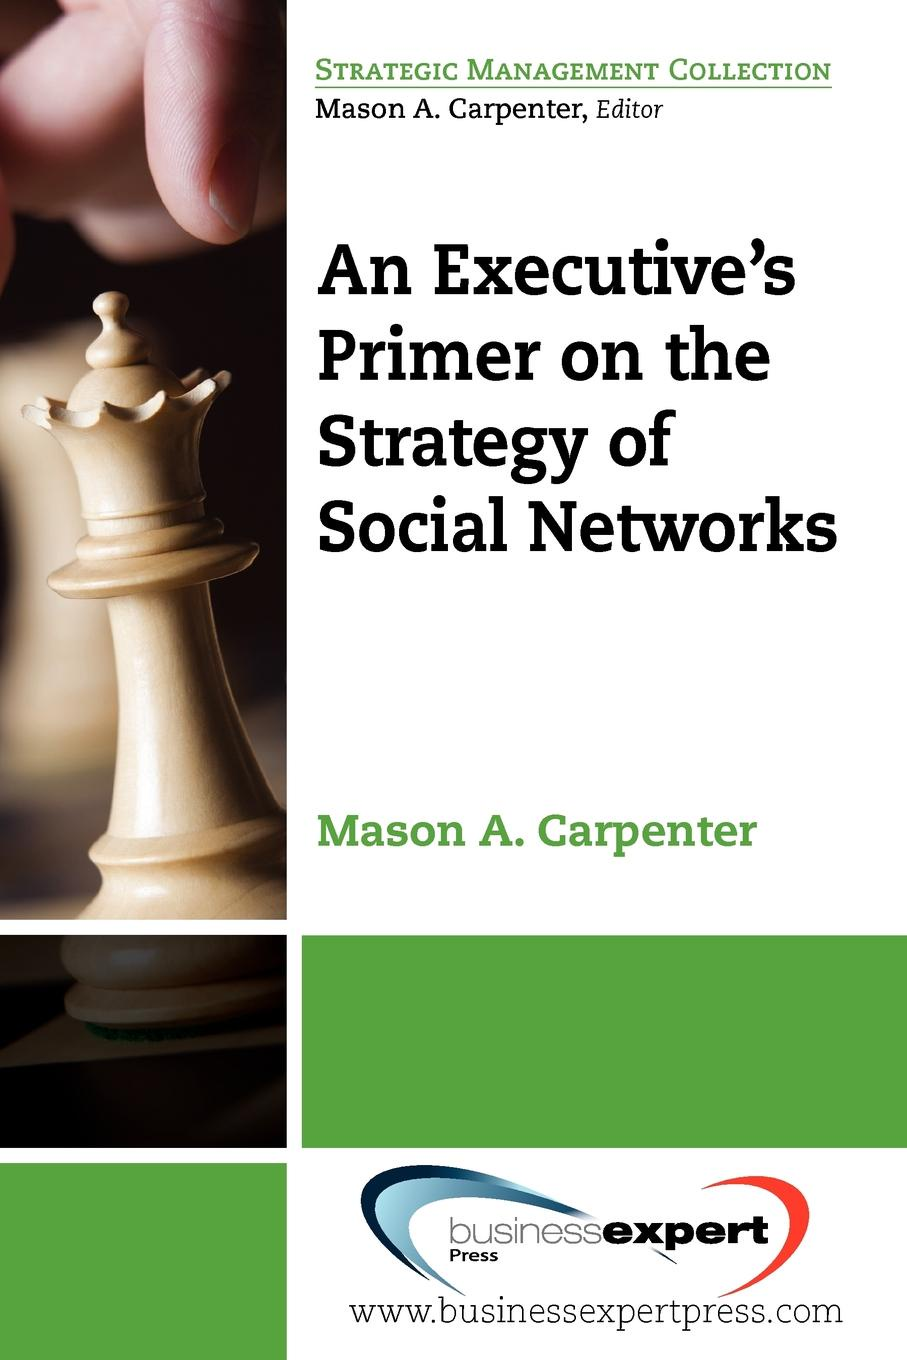 Mason Carpenter, Carpenter Mason Carpenter An Executive.s Primer on the Strategy of Social Networks social networking